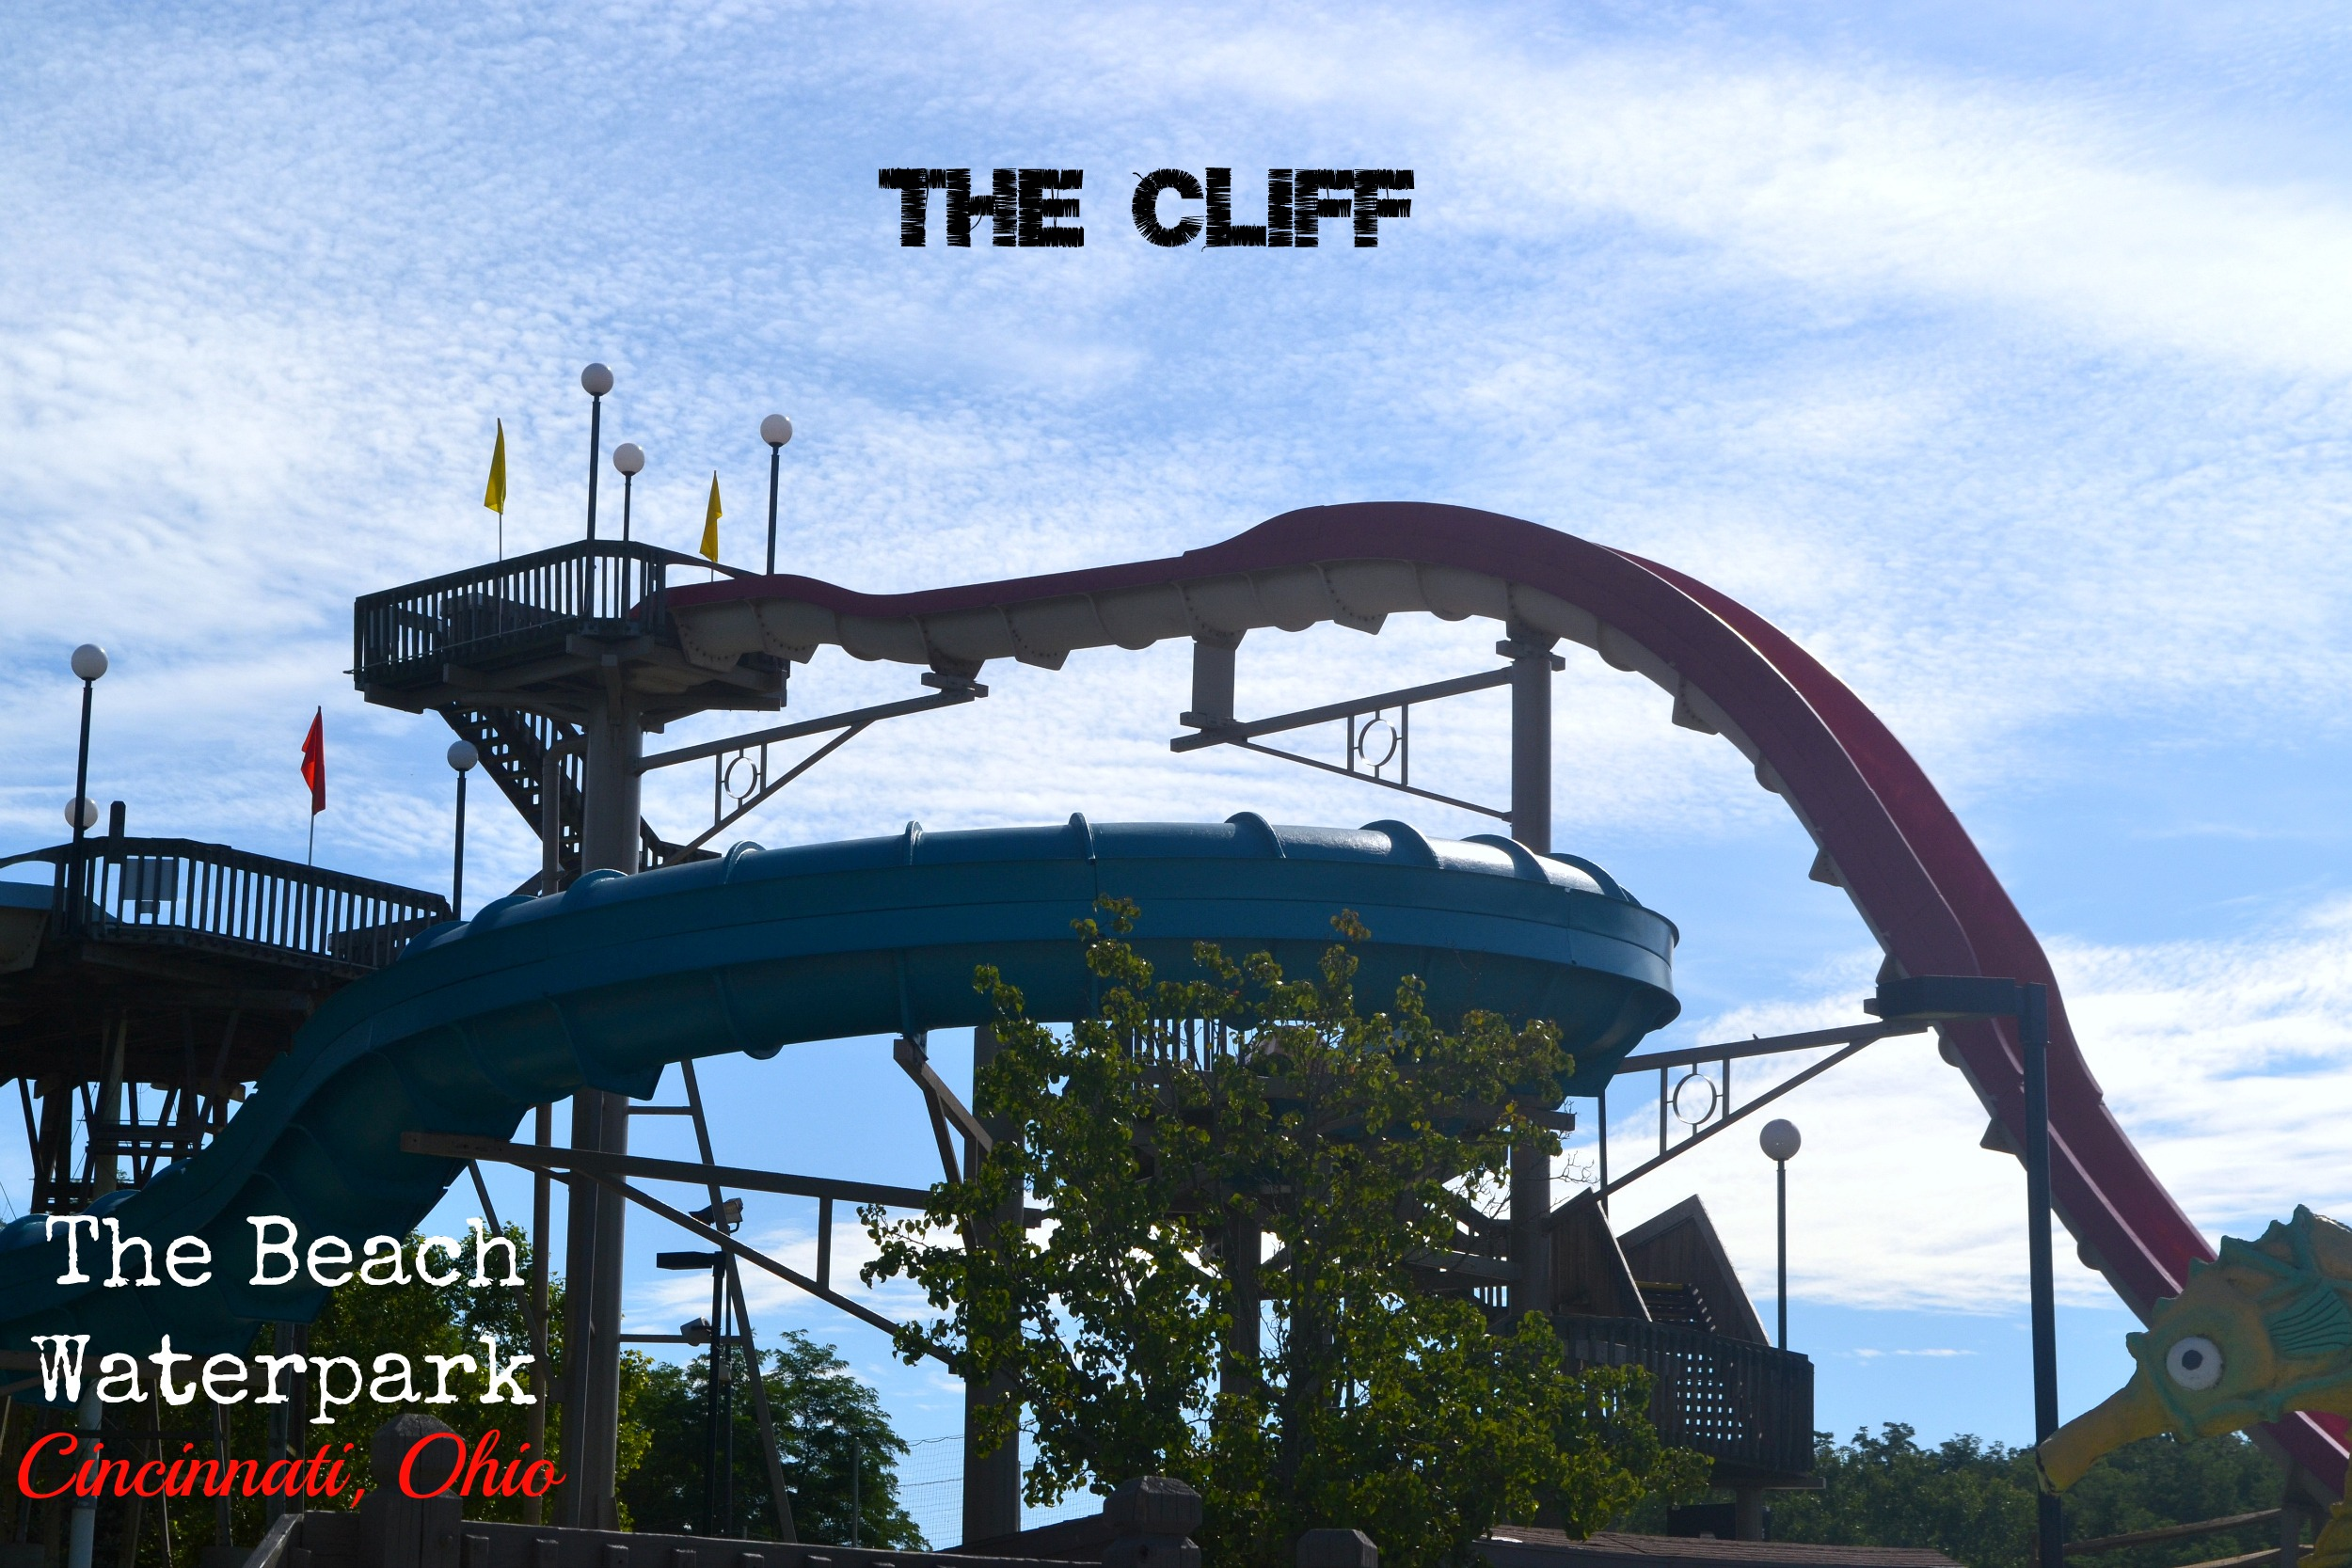 Things To Do In Cincinnati The Beach Waterpark Cliff Optimistic Mommy